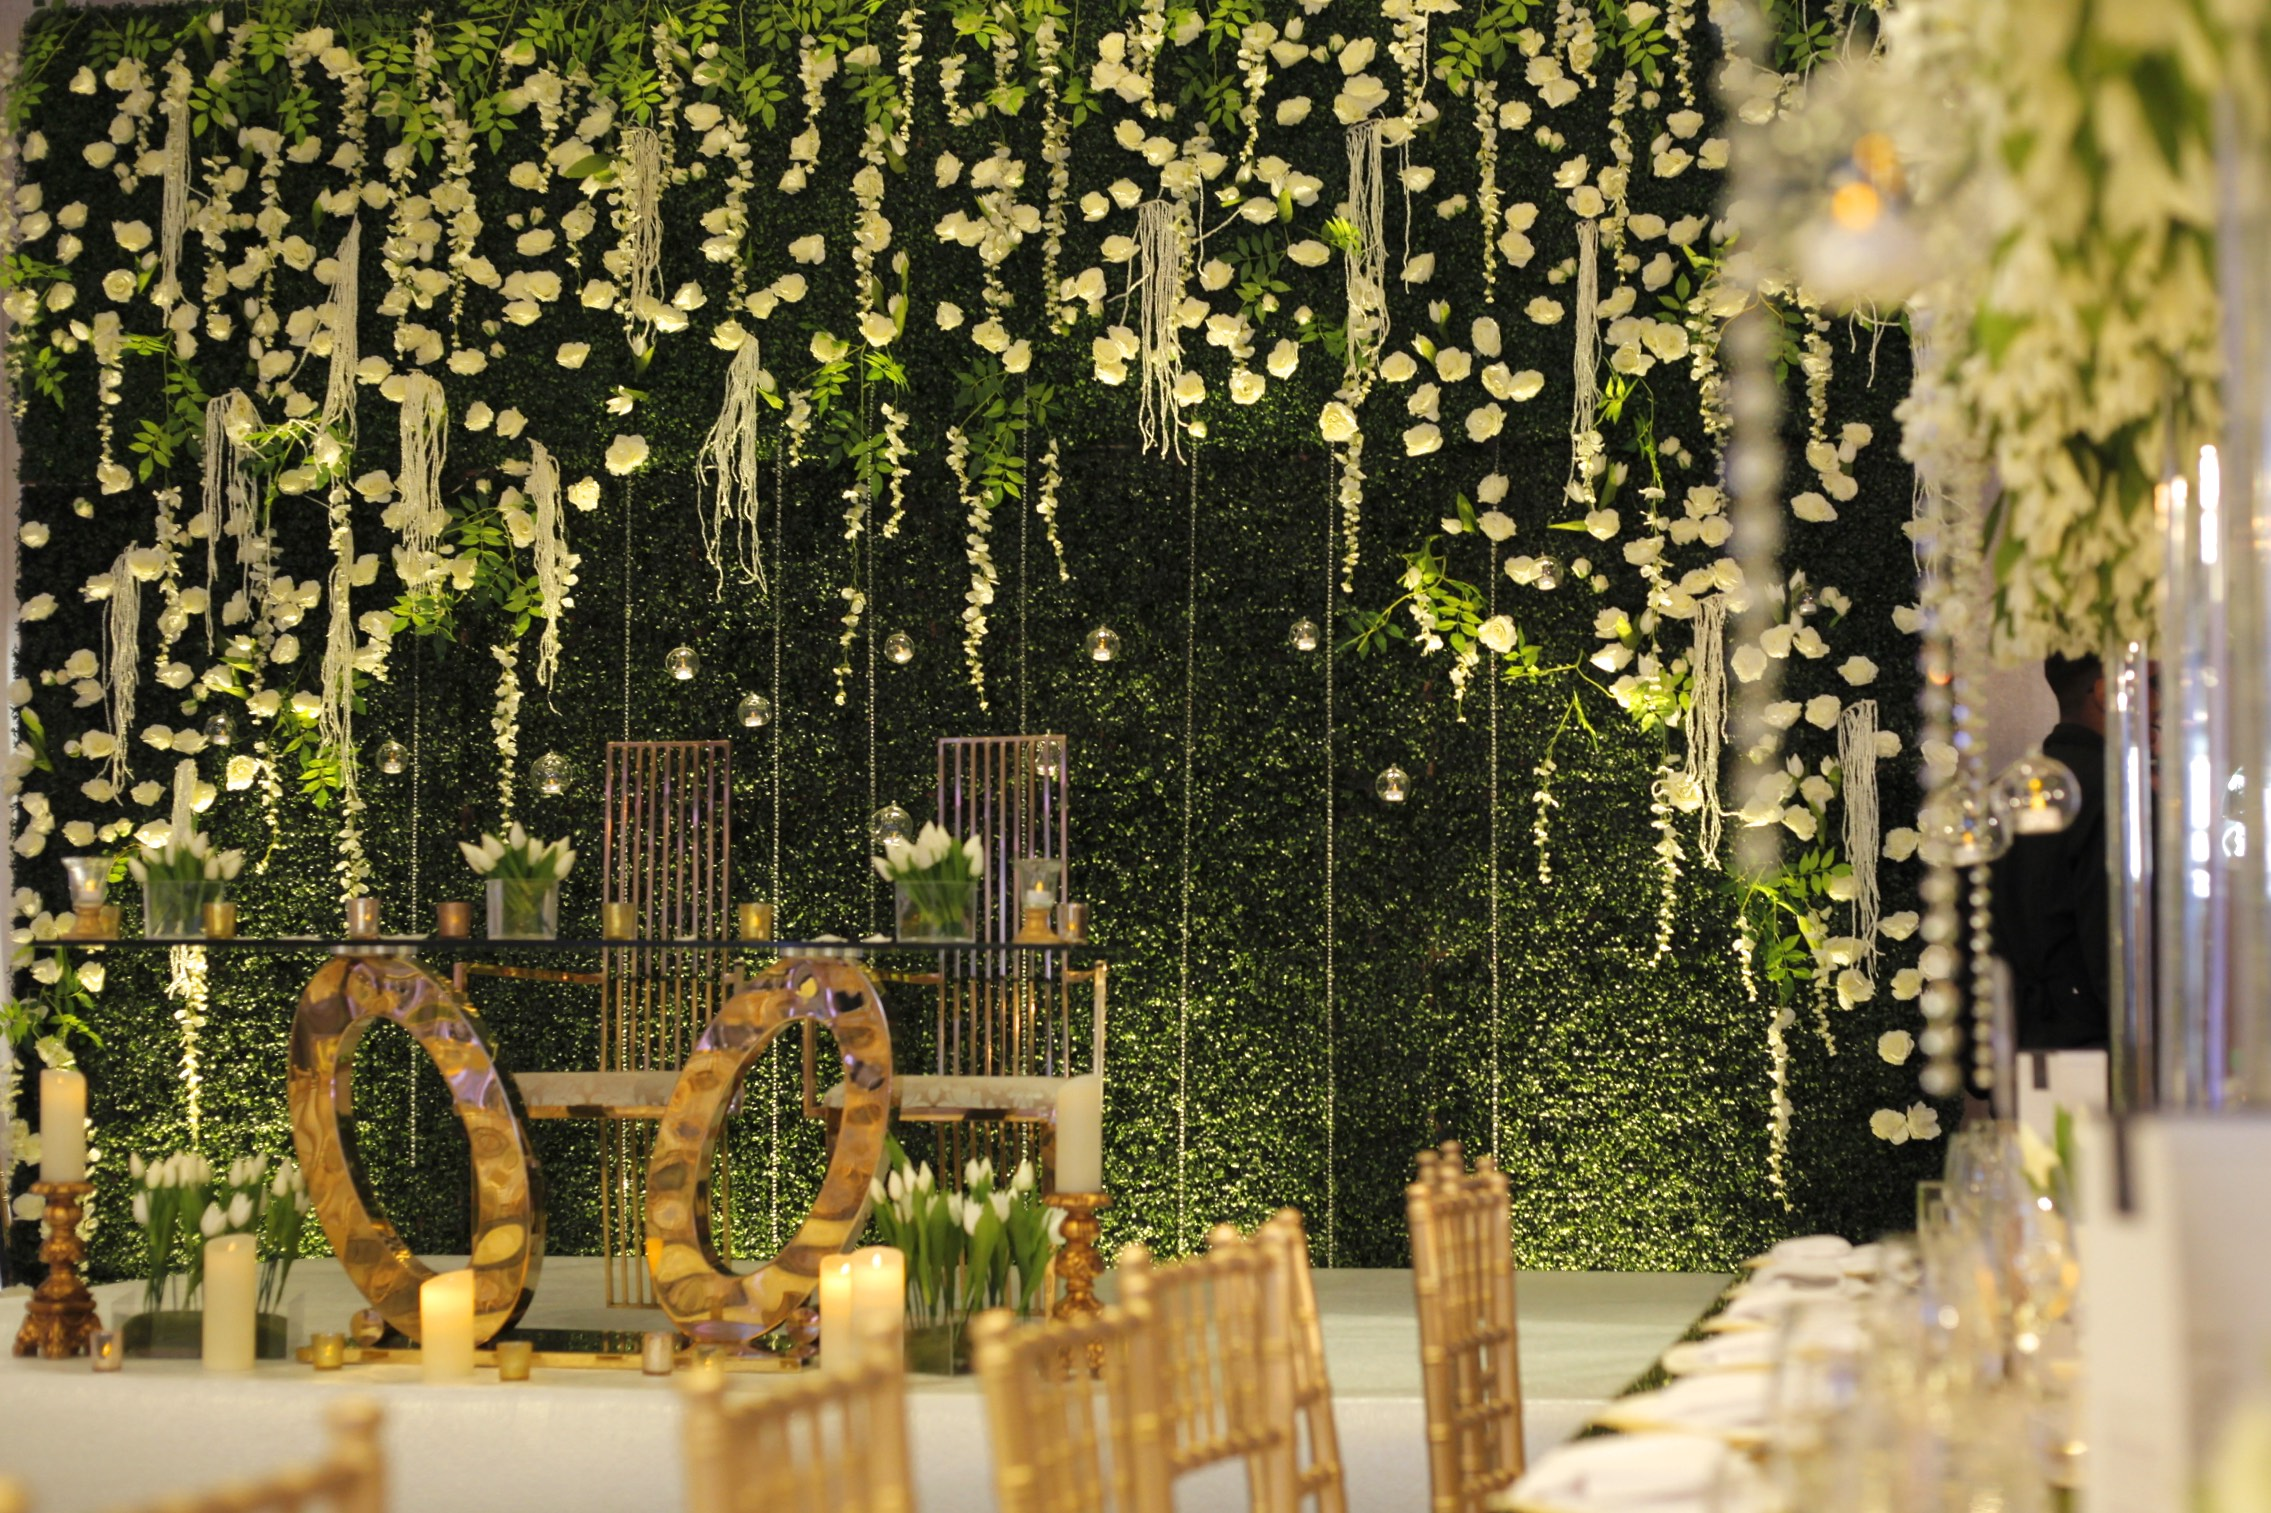 The Green Wall - The four meter High Green Wall was designed and custom built by our in-house team, following a brief of something bold, yet incorporating the floral theme used throughout the centrepieces.